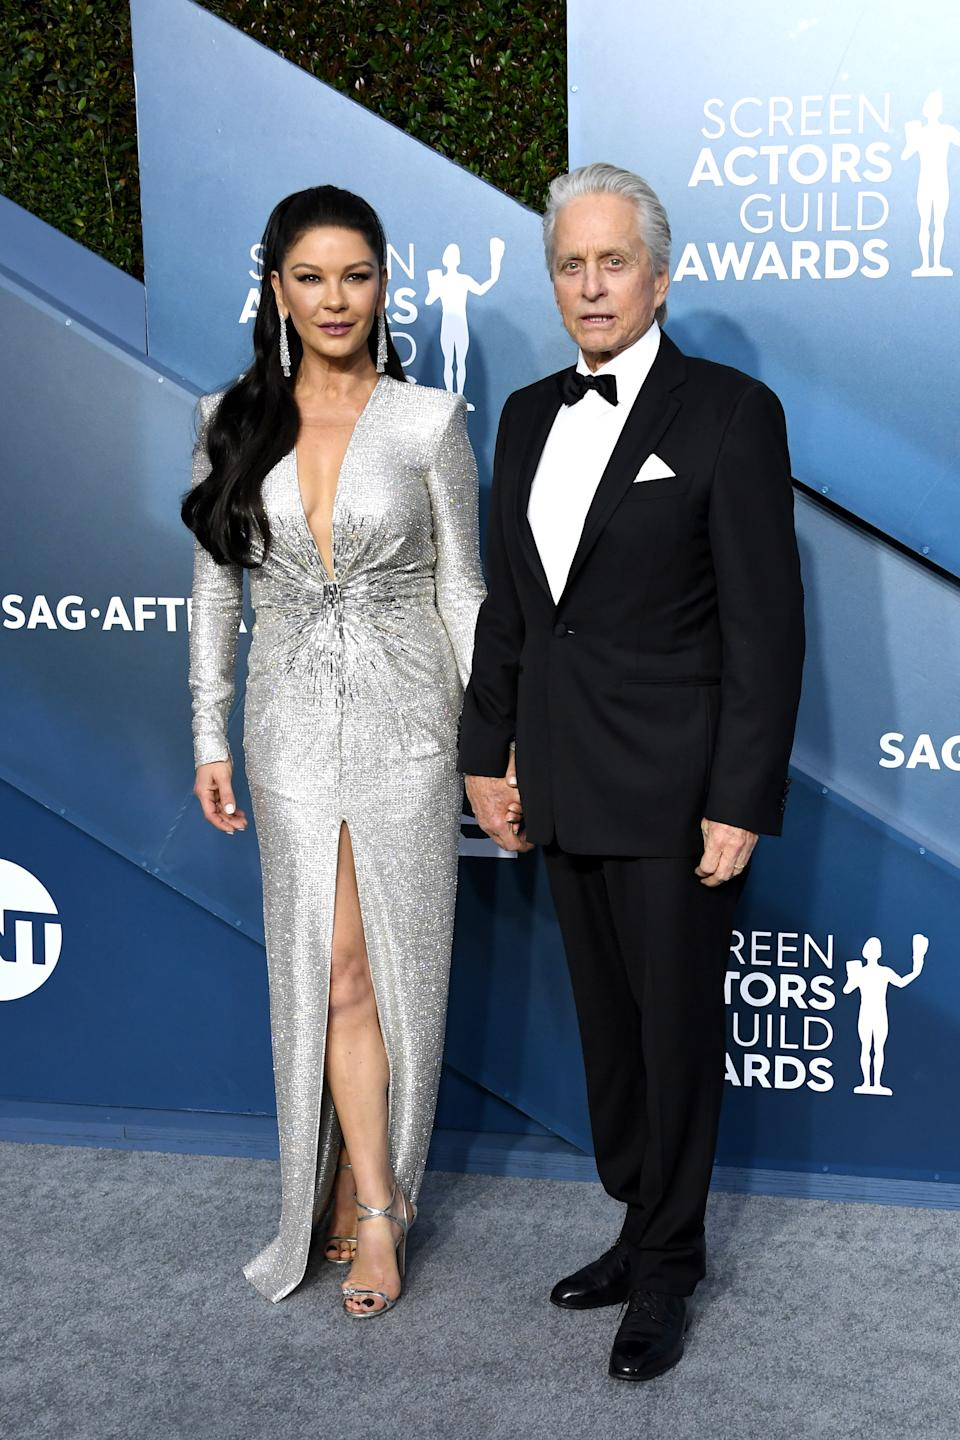 Zeta Jones (wearing Julien Macdonald) and Douglas were the picture of Hollywood royalty as they arrived hand-in-hand on the red carpet.